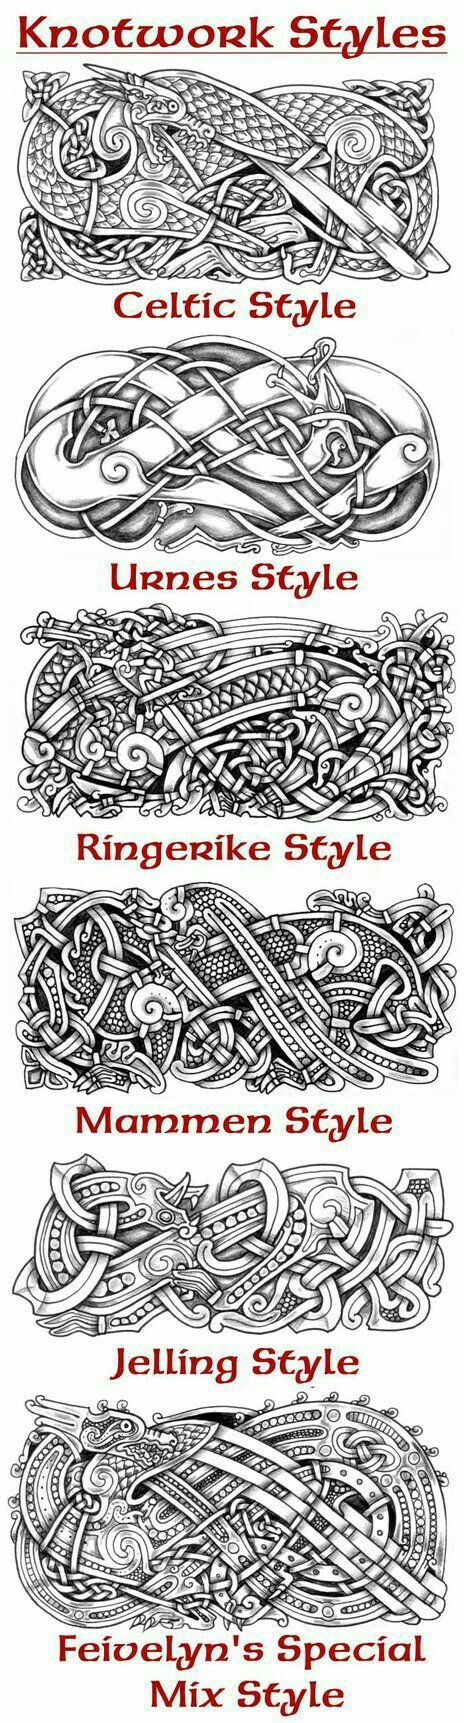 A Collection Of Knotwork Styles Celtic Art Norse Tattoo Viking Tattoos